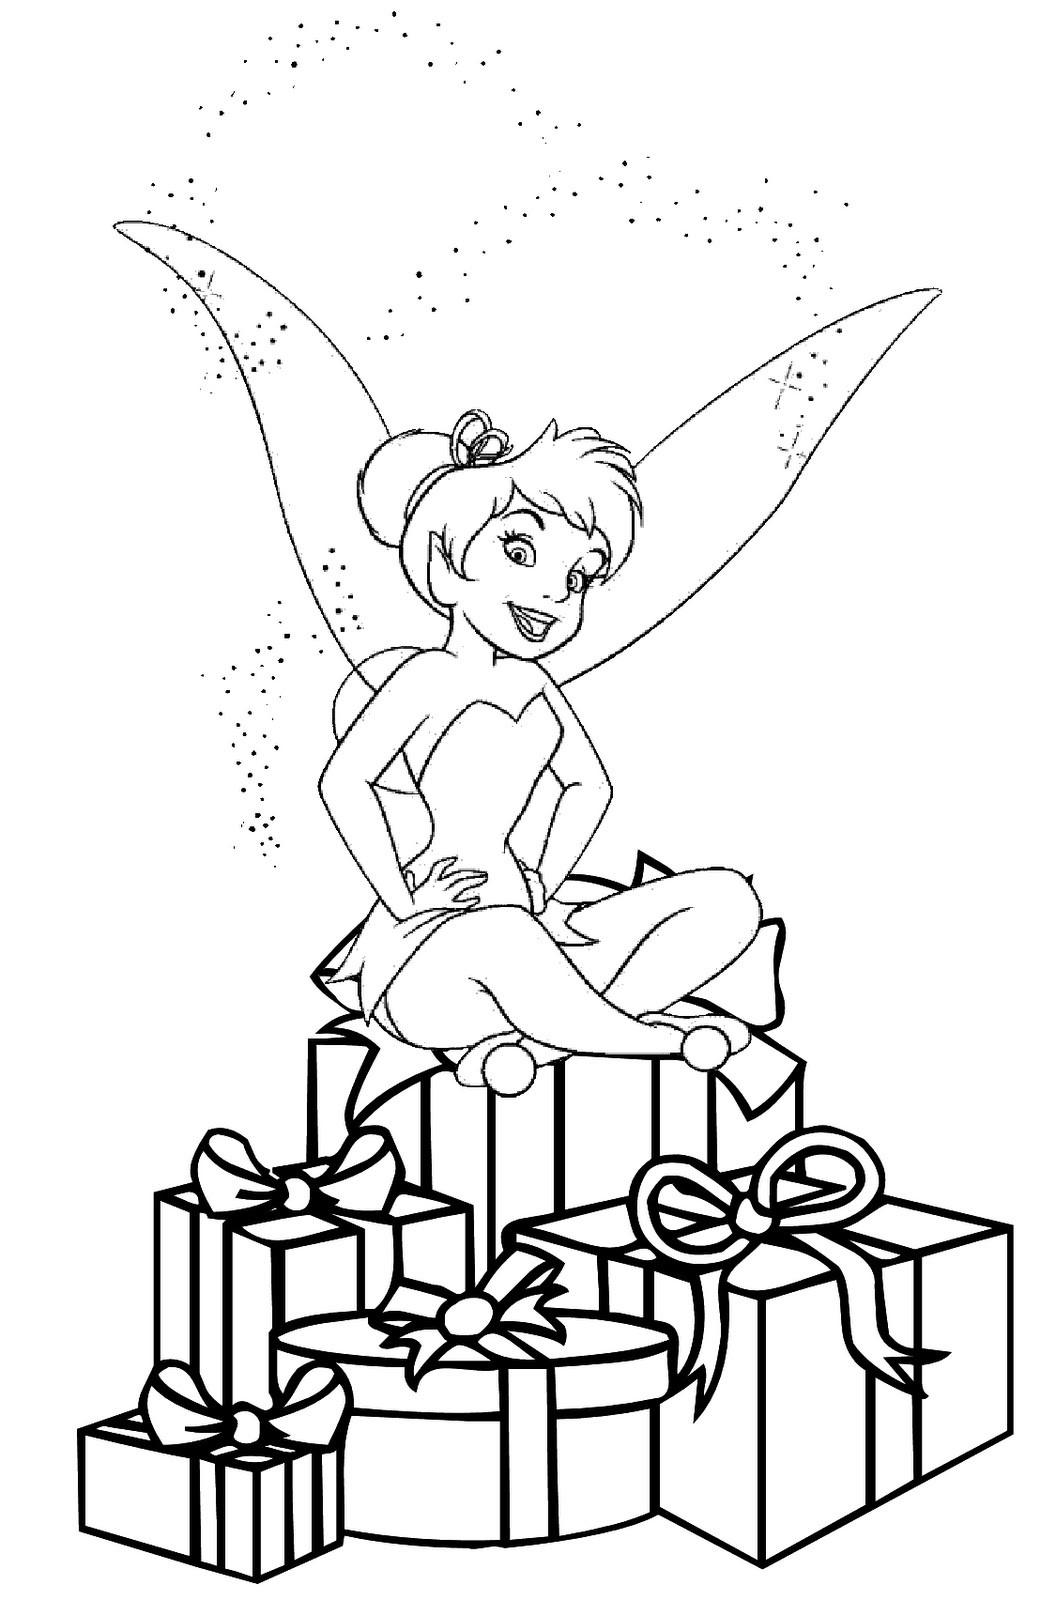 Christmas Coloring Pages For Girls  christmas coloring pages for girls printable